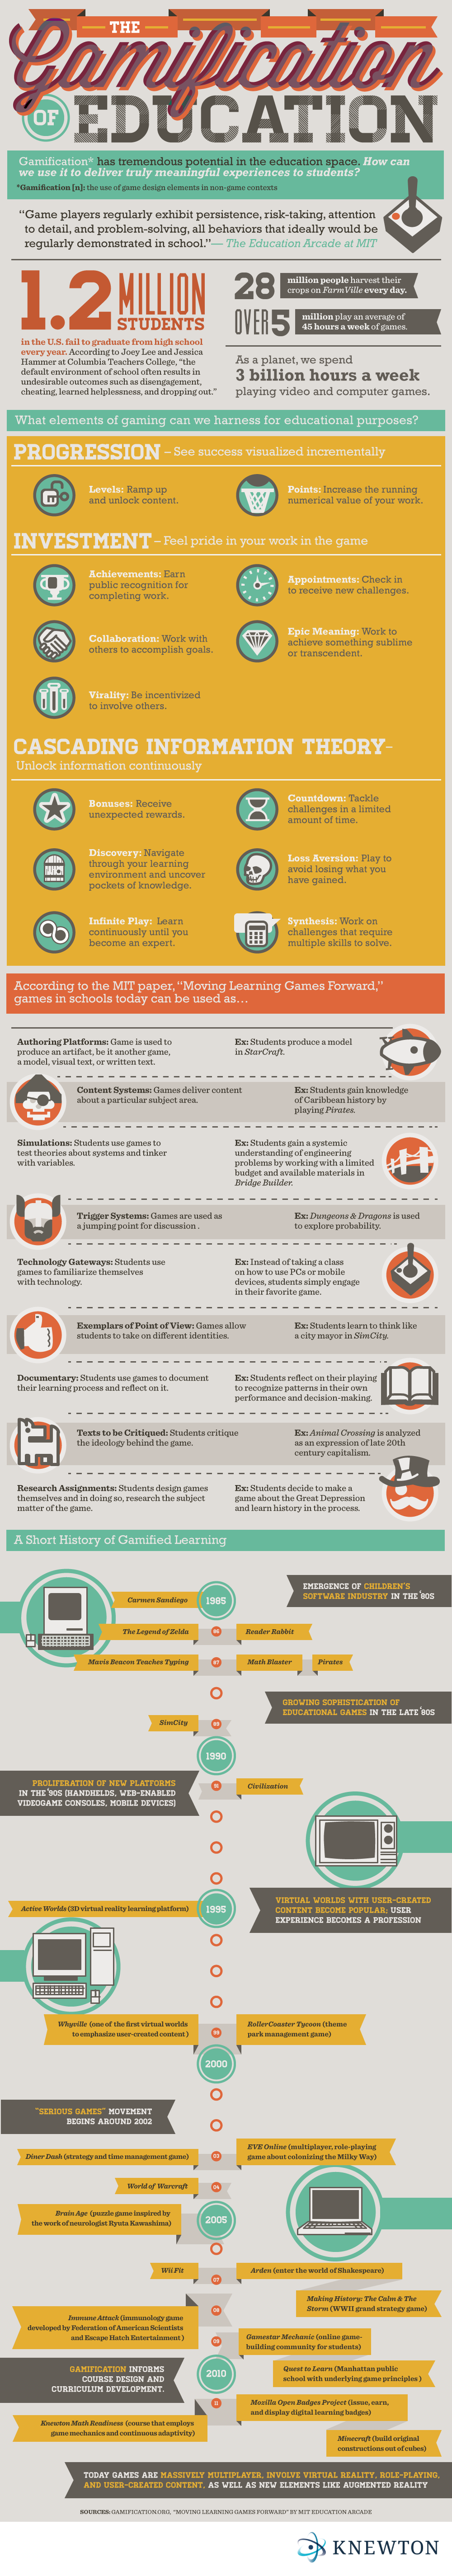 The Gamification of Education Infographic - Good Infographics